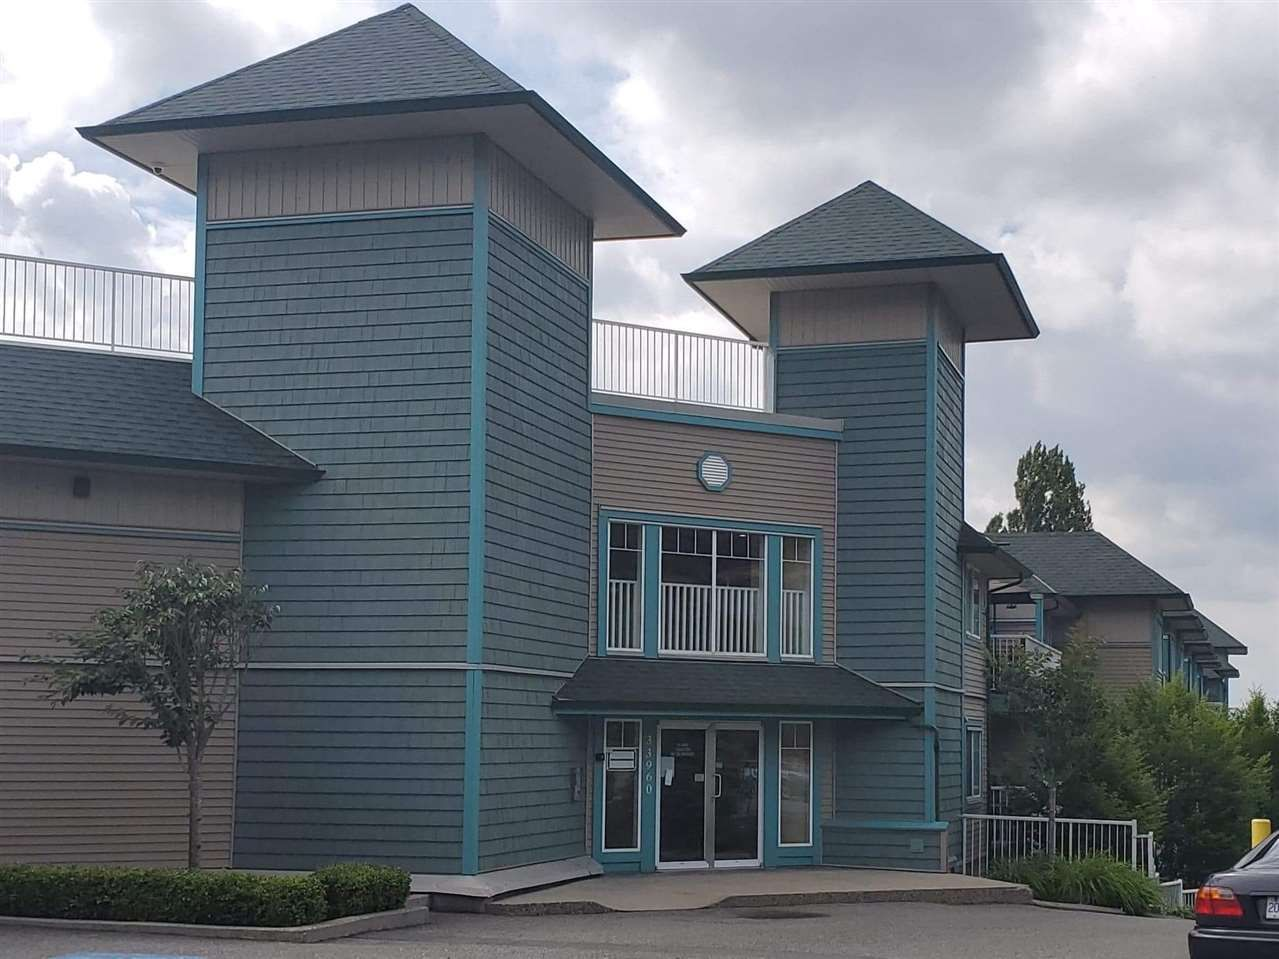 """Main Photo: 407 33960 OLD YALE Road in Abbotsford: Central Abbotsford Condo for sale in """"OLD YALE HEIGHTS"""" : MLS®# R2499608"""